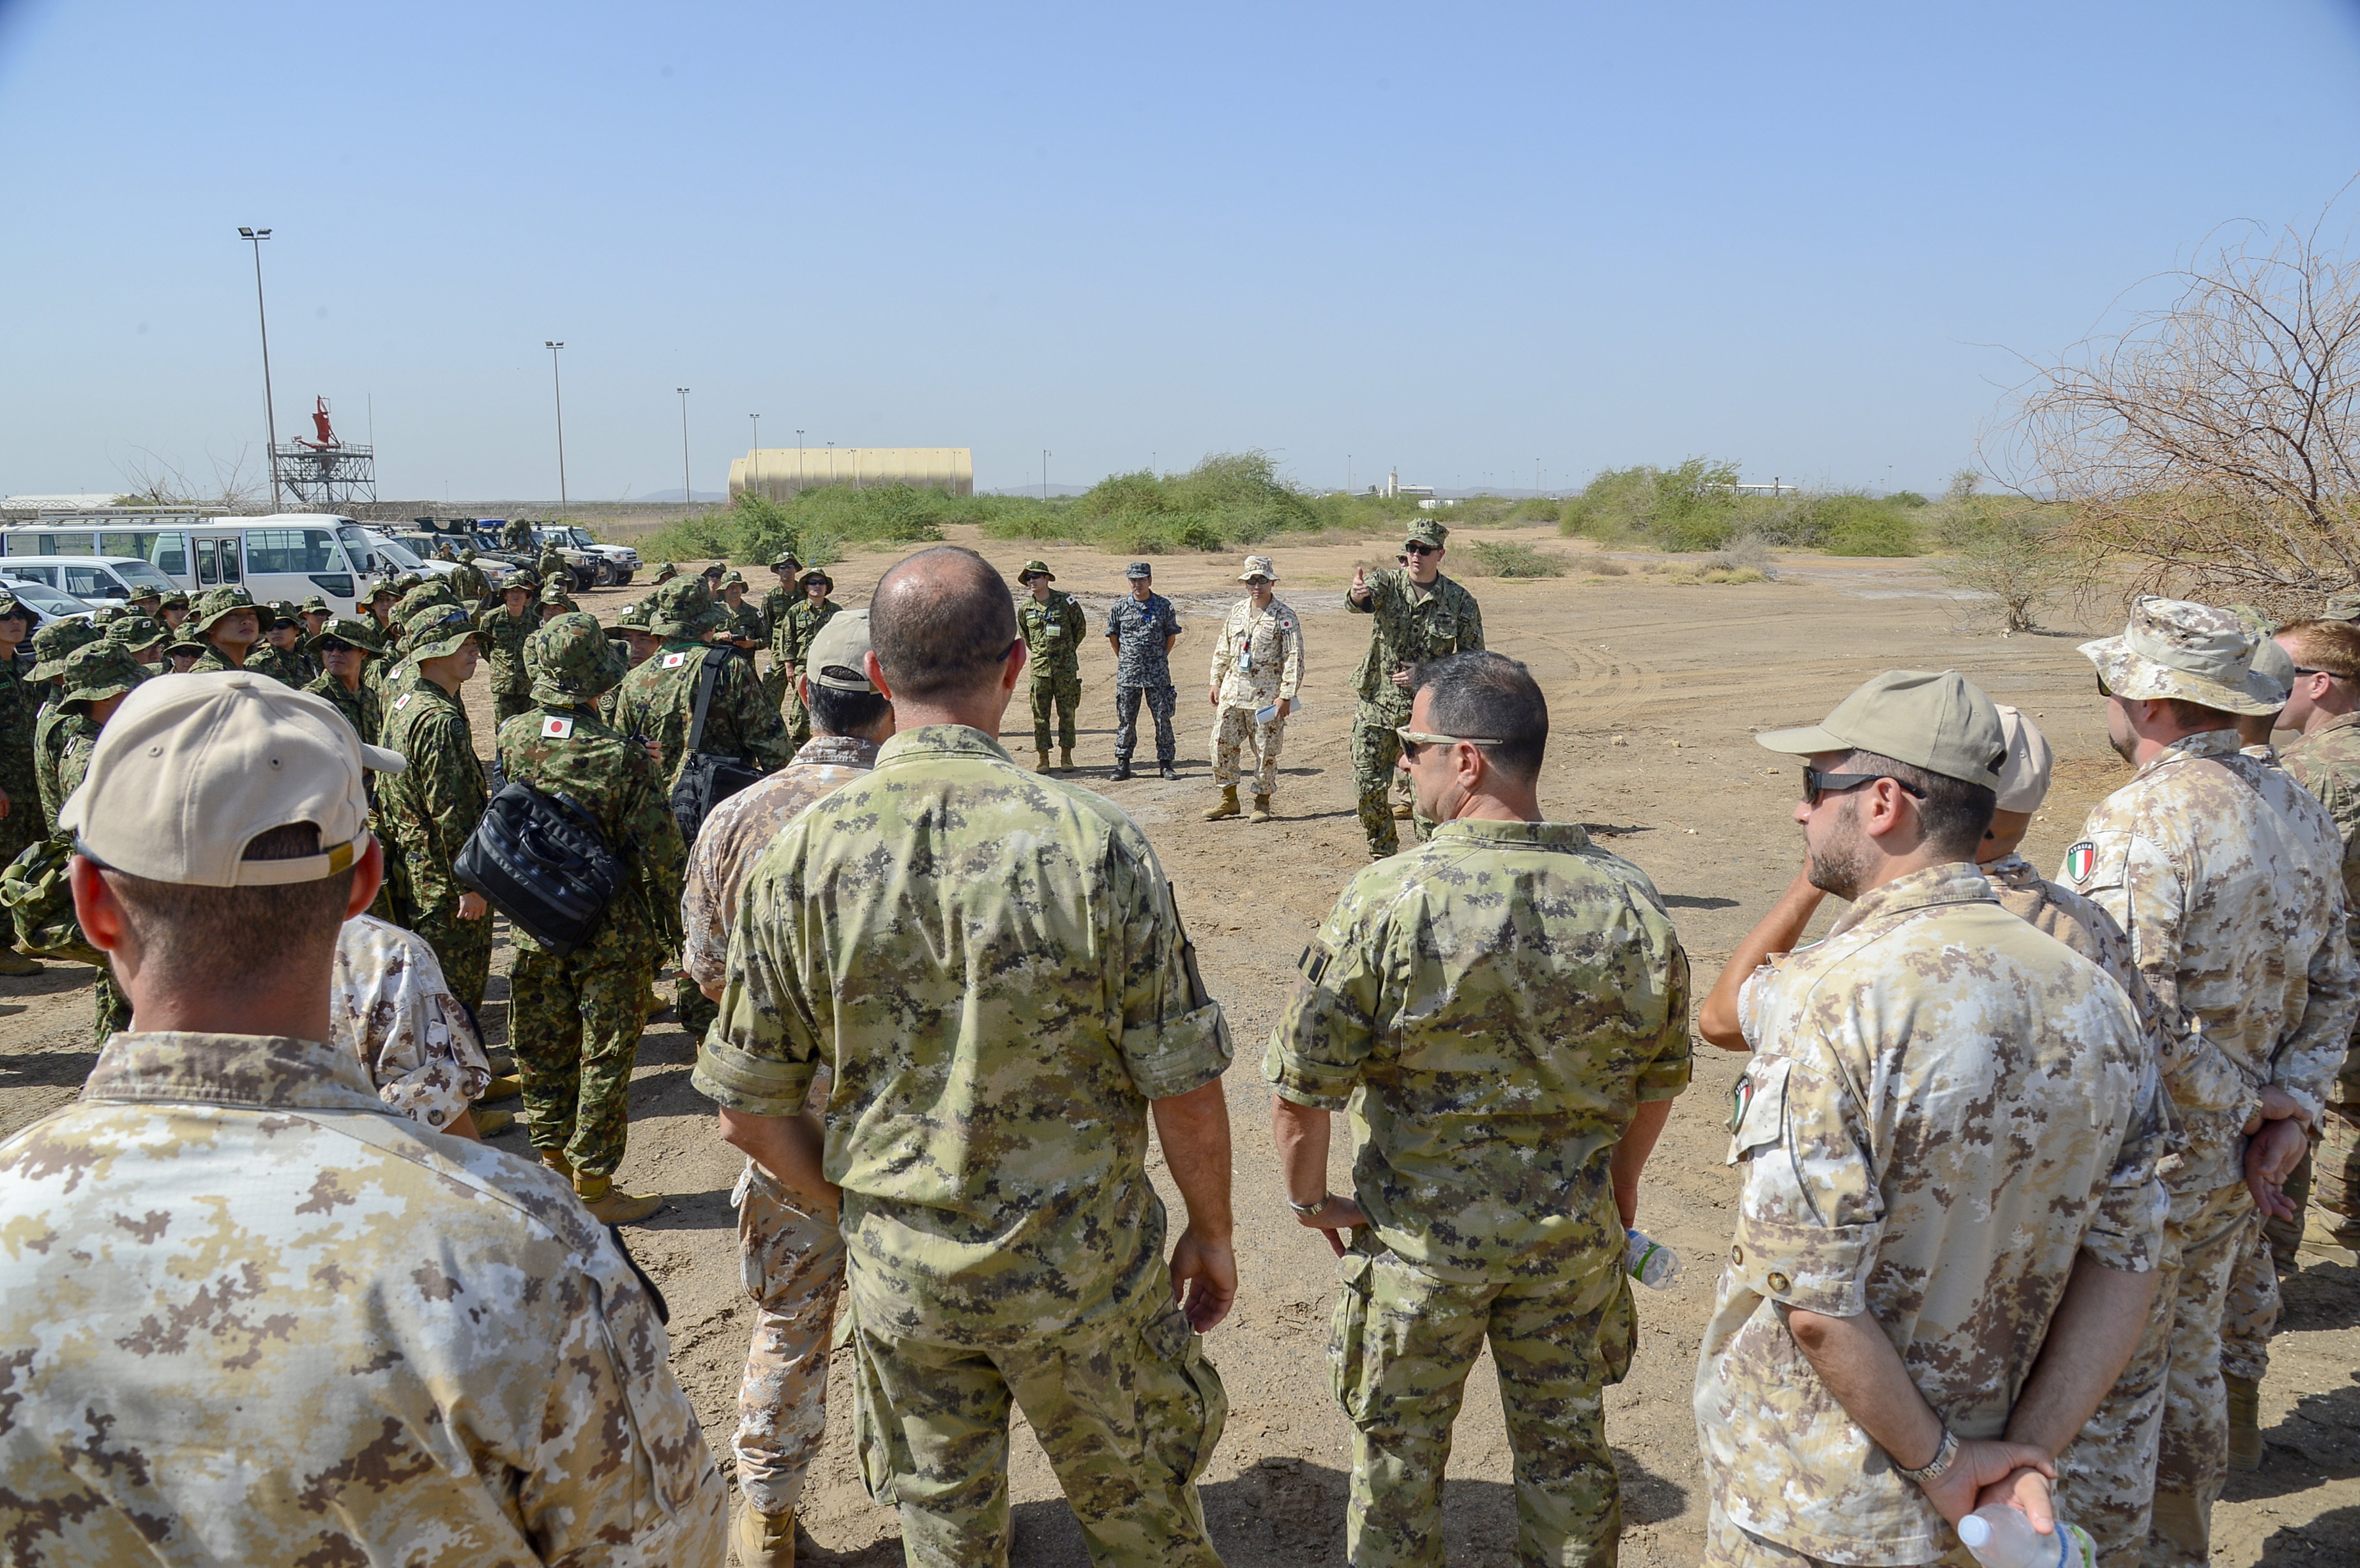 U.S. Army and coalition partners receive a brief on convoy evacuation operations during a joint coalition exercise at Camp Lemonnier, Djibouti, Sep. 5, 2018. The joint exercise allowed coalition forces from Italy, Japan, France, and Djibouti to learn alongside the U.S. Army and exchane best practices. (U.S. Navy Photo by Mass Communication Specialist 2nd Class Timothy M. Ahearn)